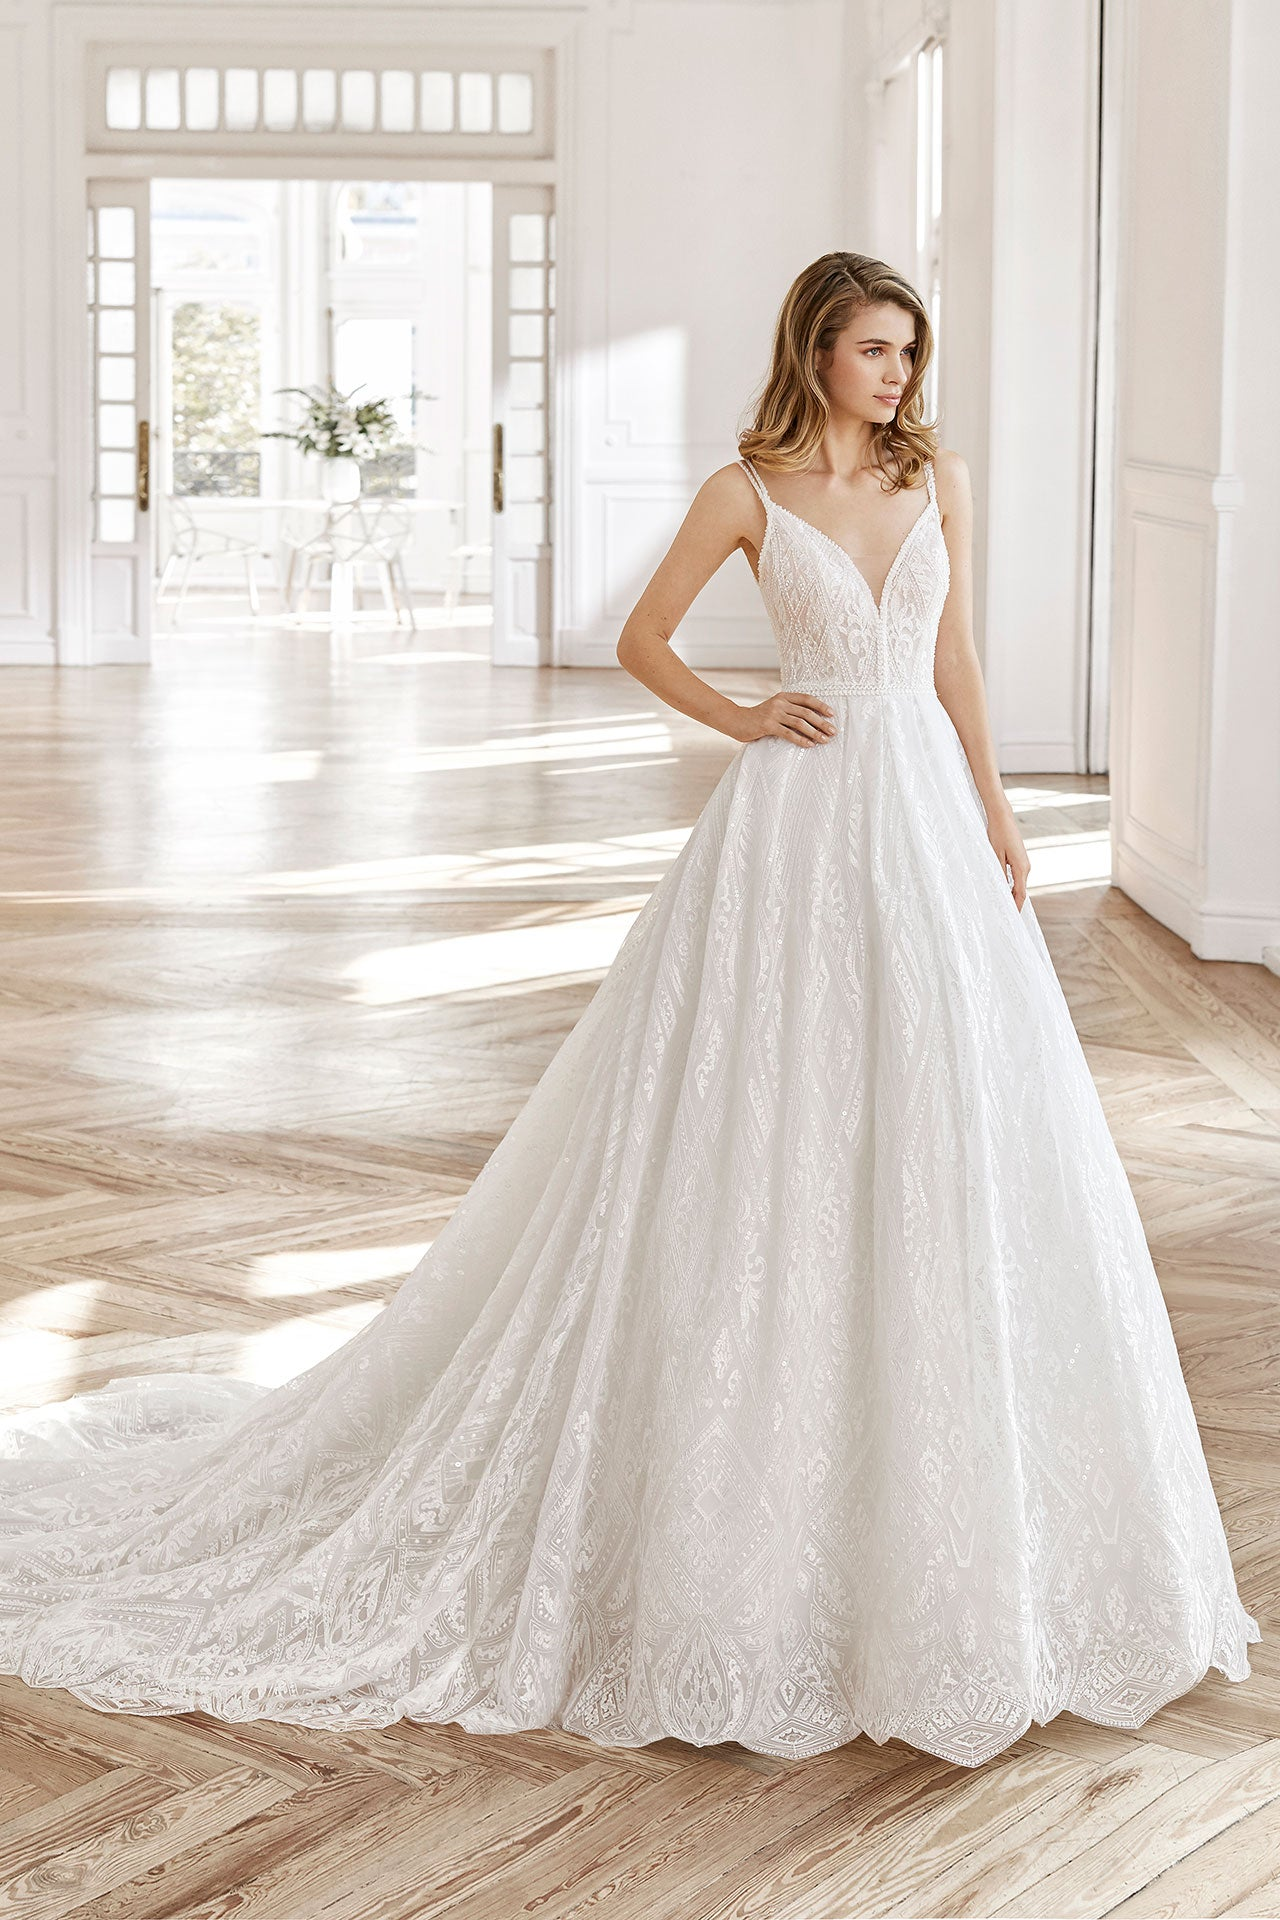 Niord - New, Gown, Aire Barcelona - Eternal Bridal